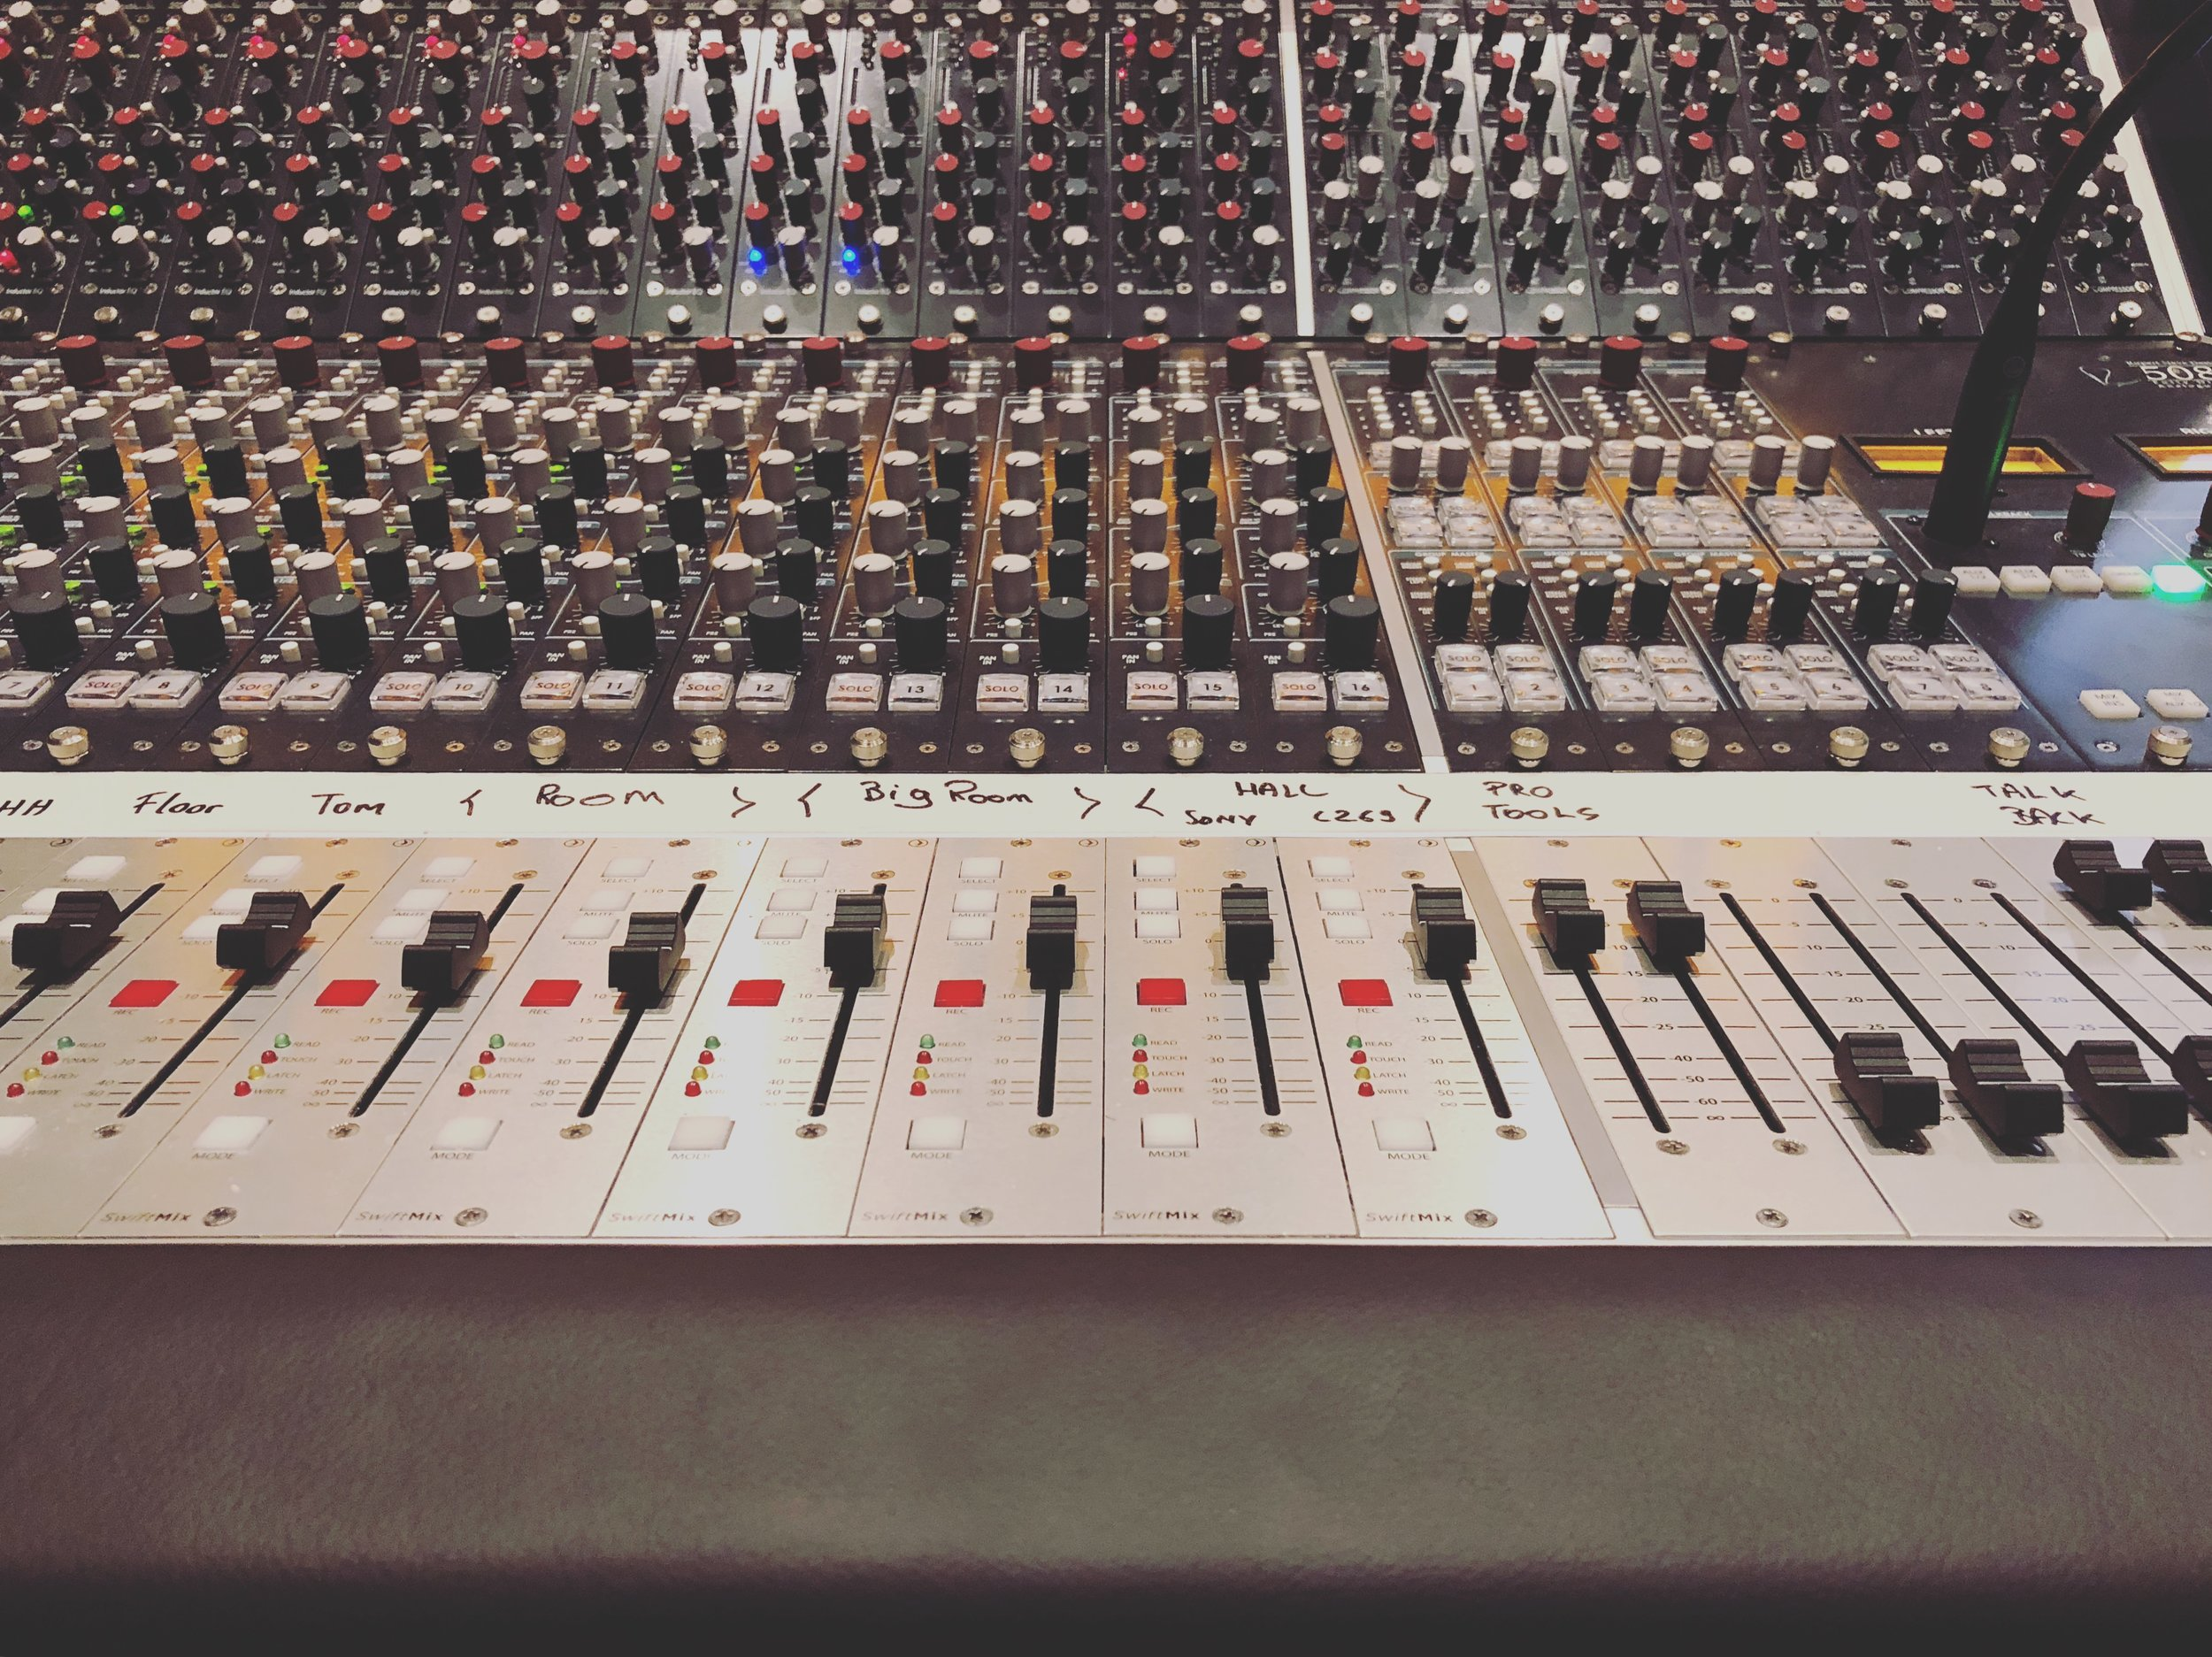 Obligatory photo of mixing table. Check.